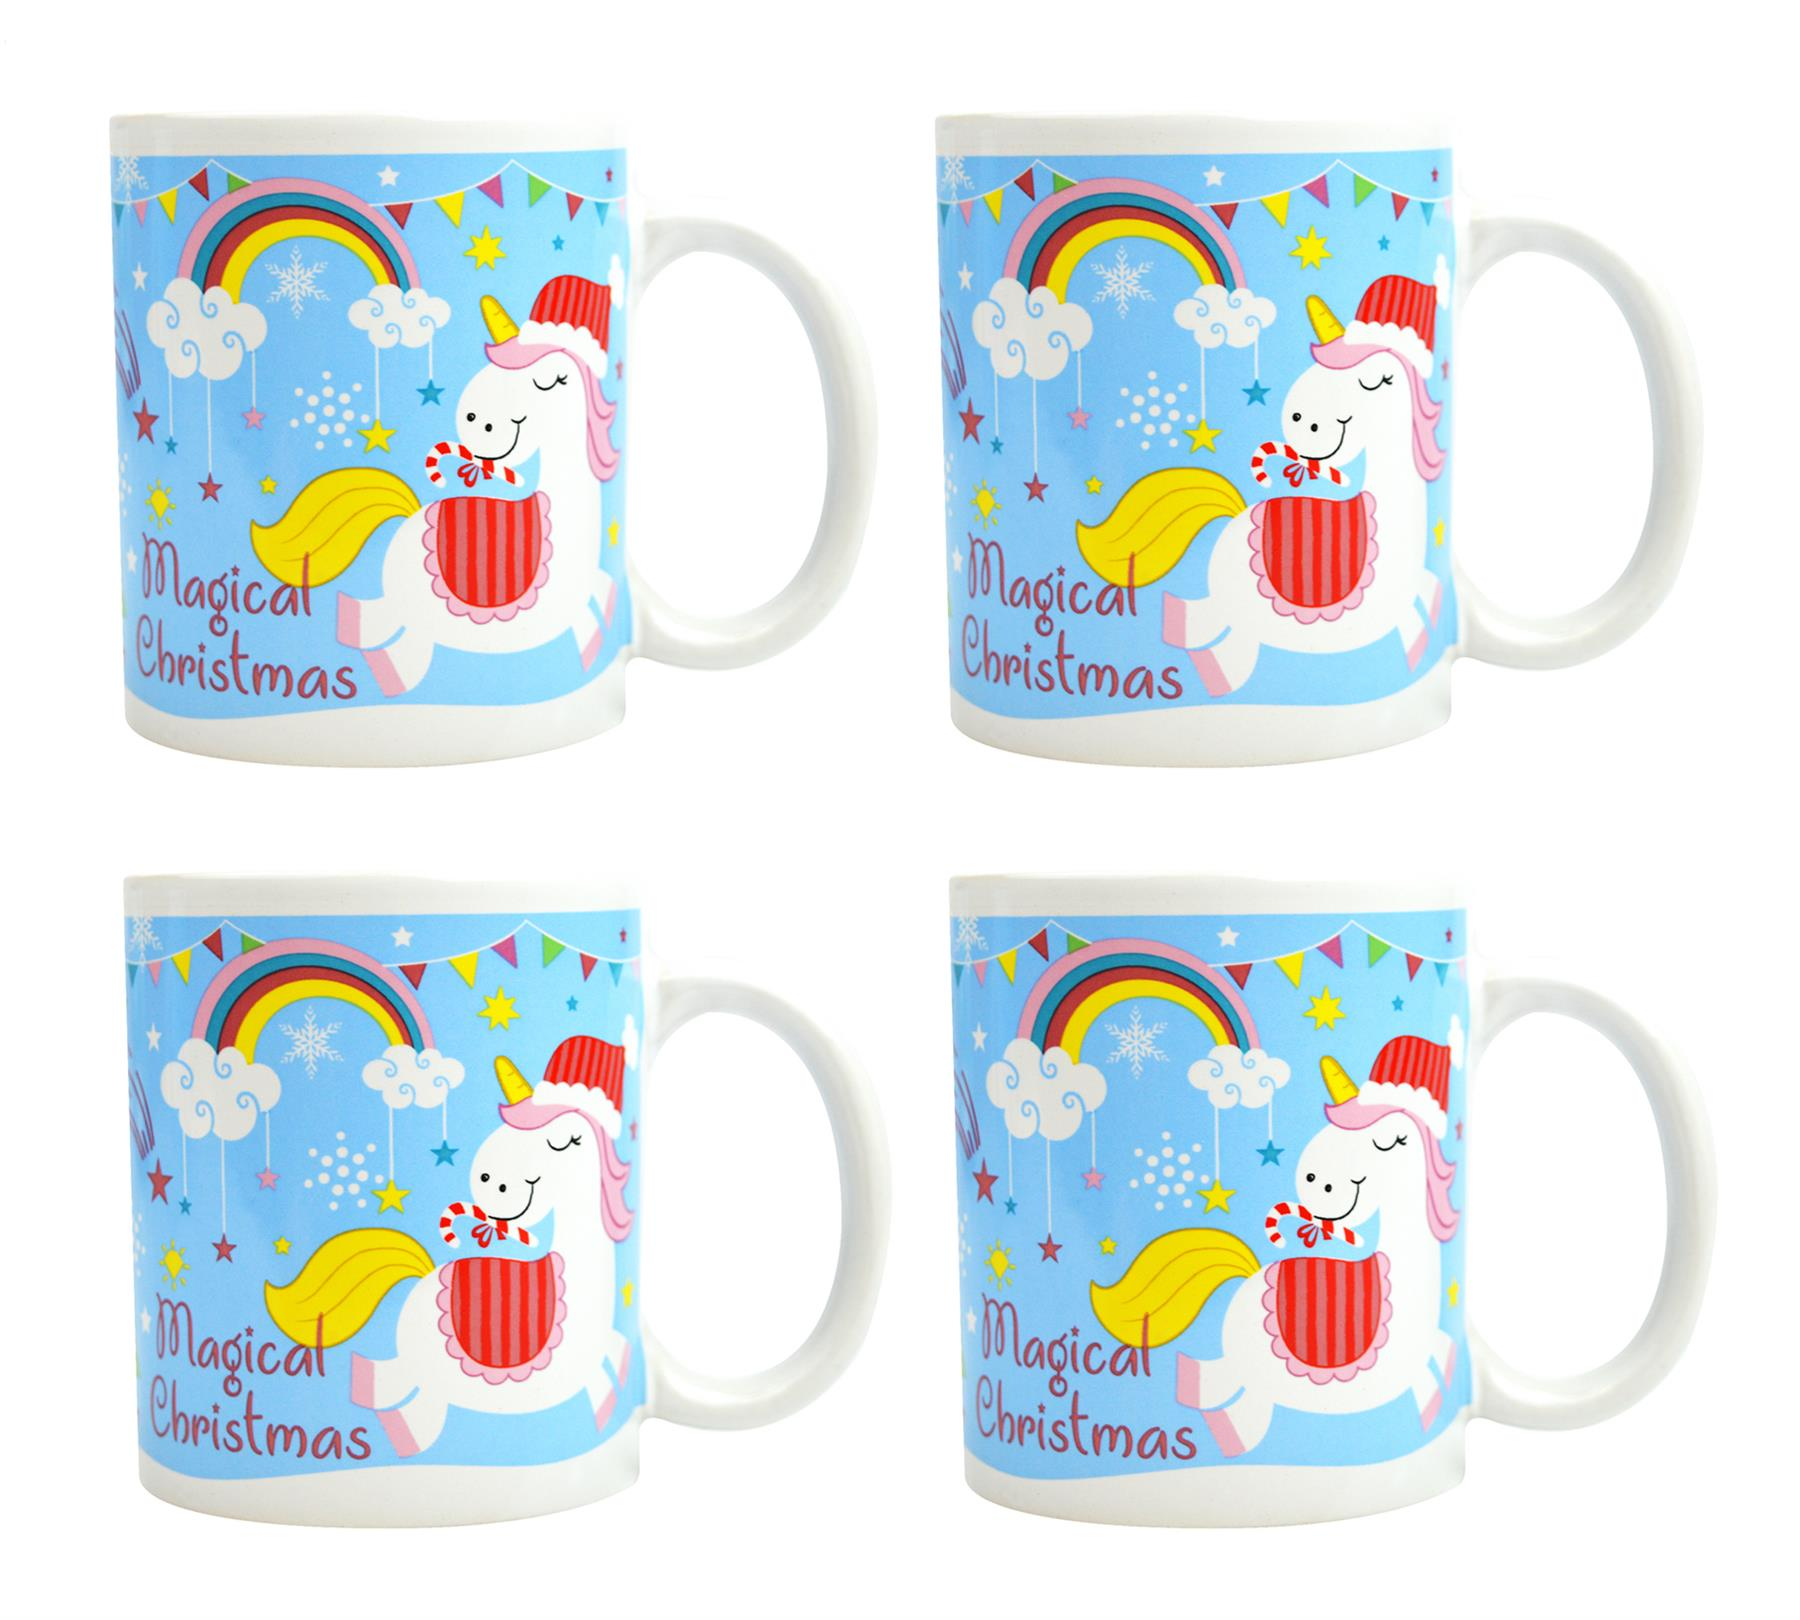 Christmas Coffee Mugs.Details About 4 Coffee Mugs Tea Cups Christmas Unicorn Novelty Set Funny Festive Porcelain